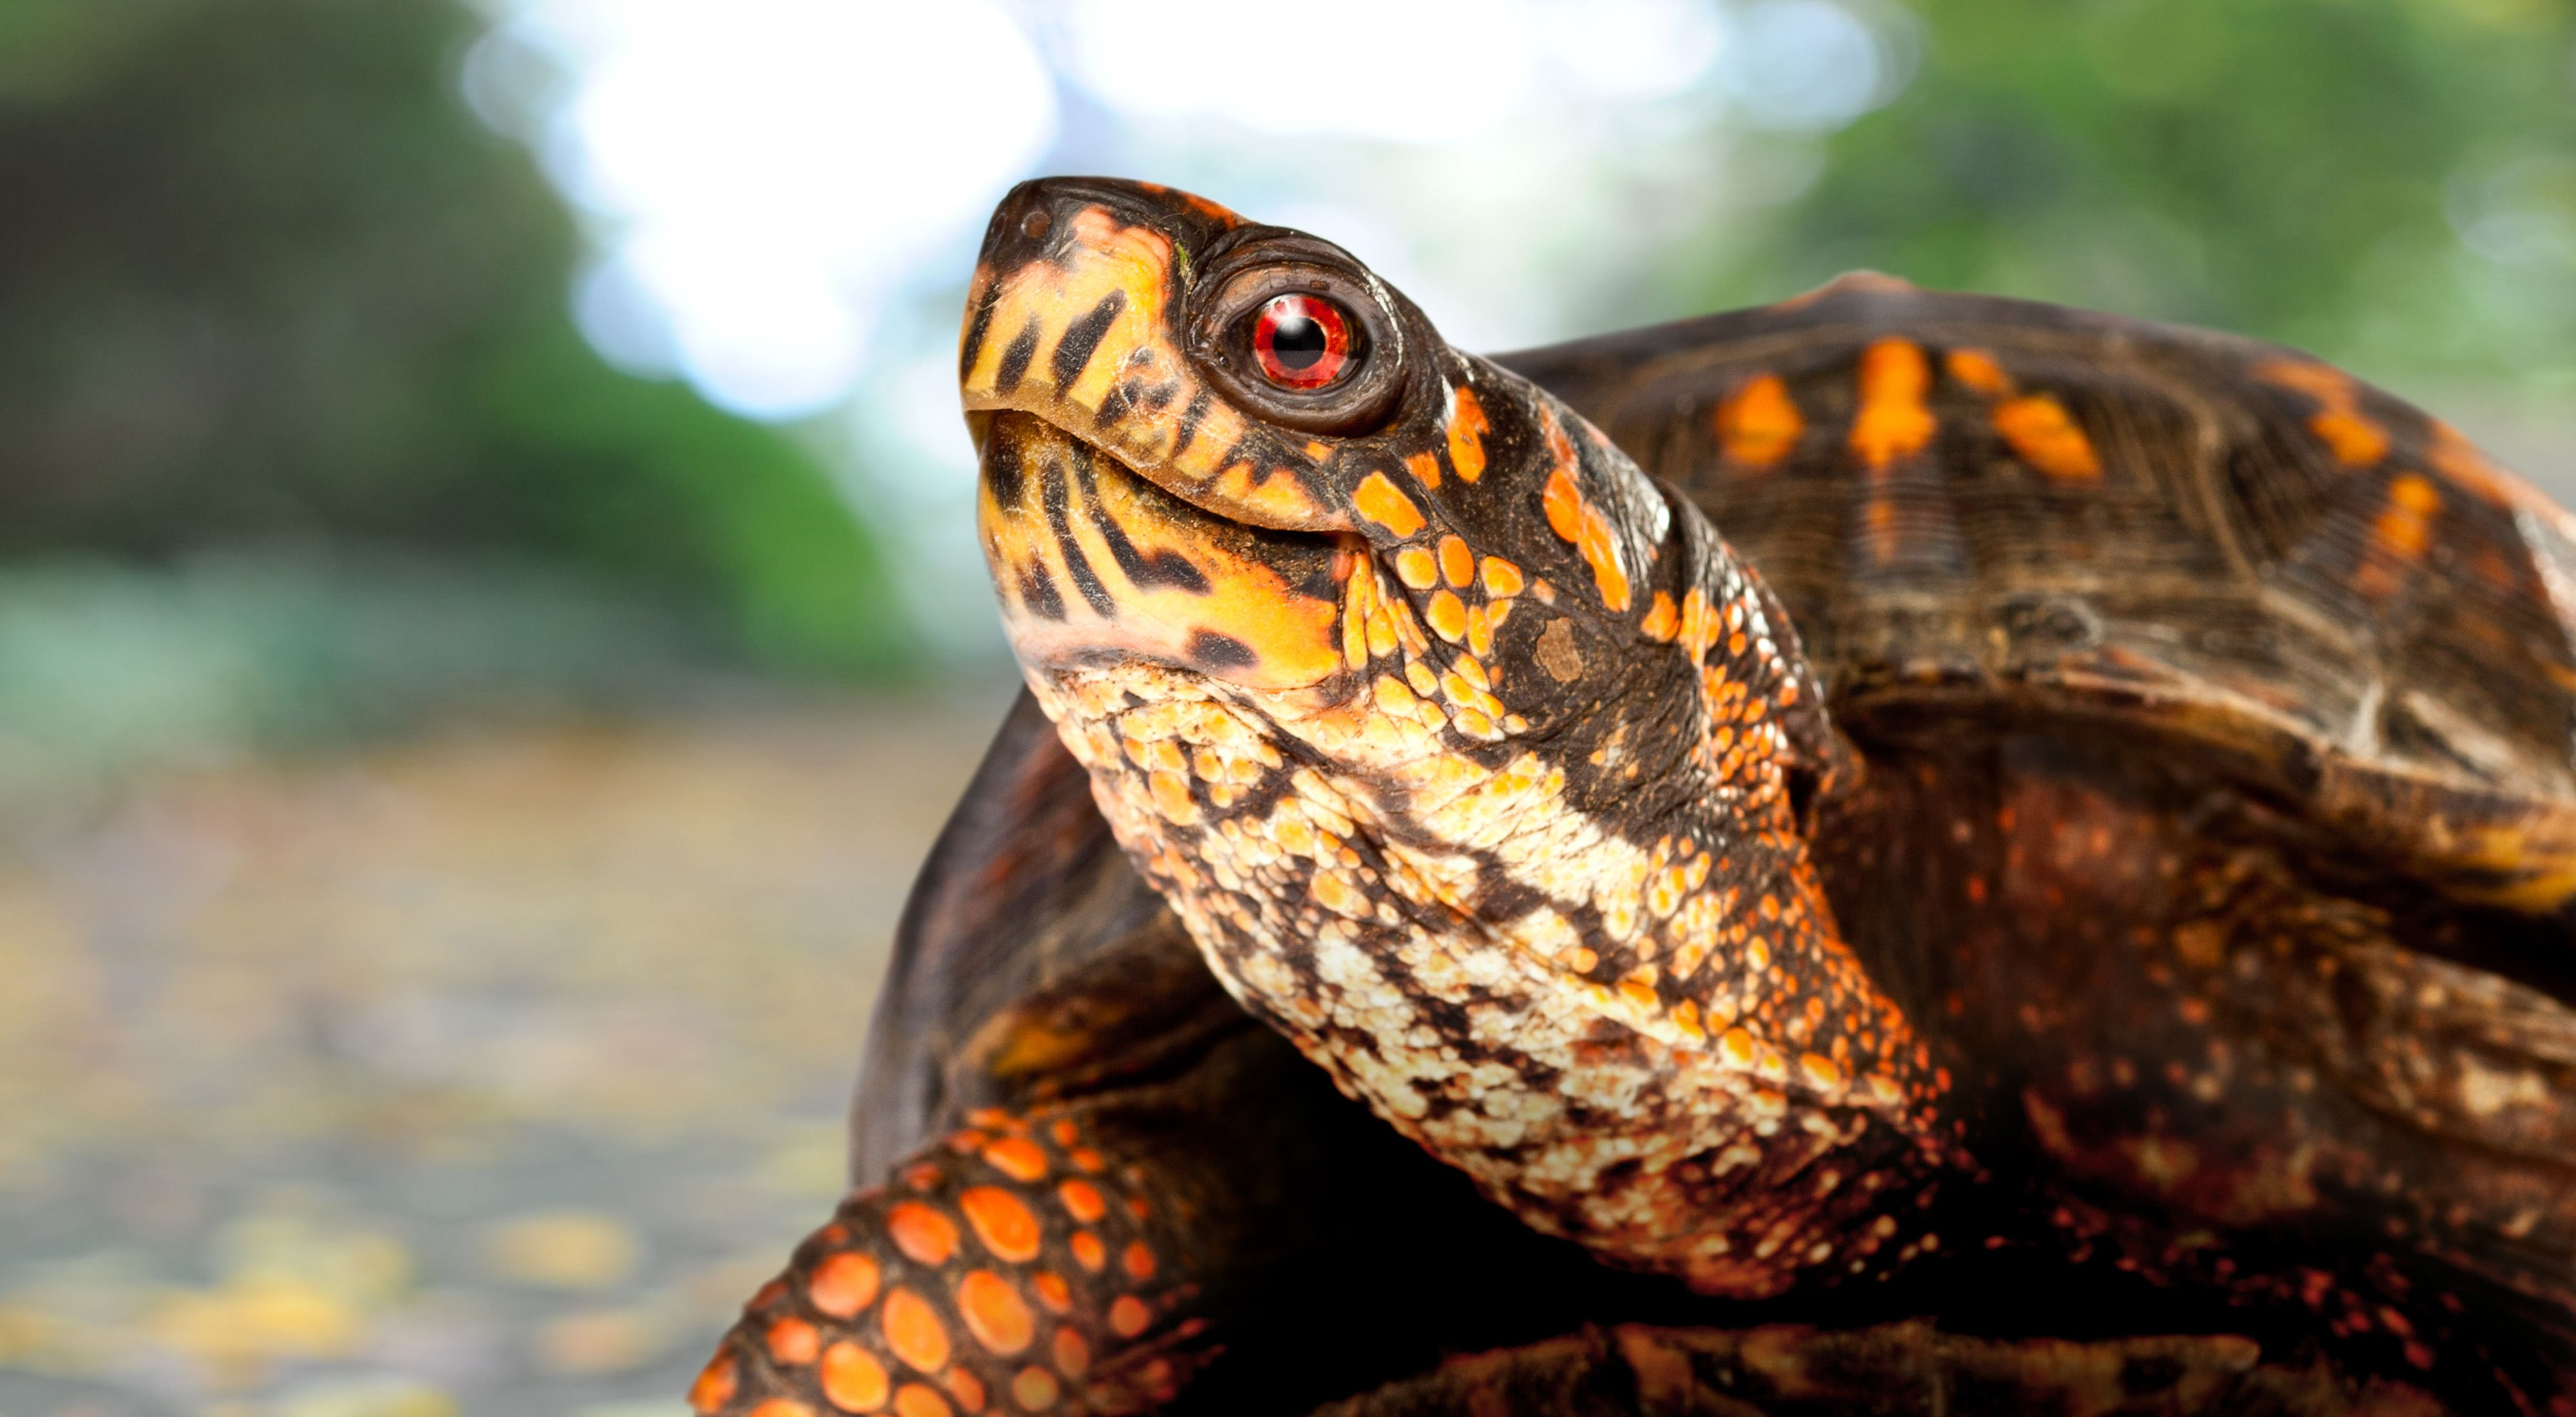 Closeup of a box turtle.